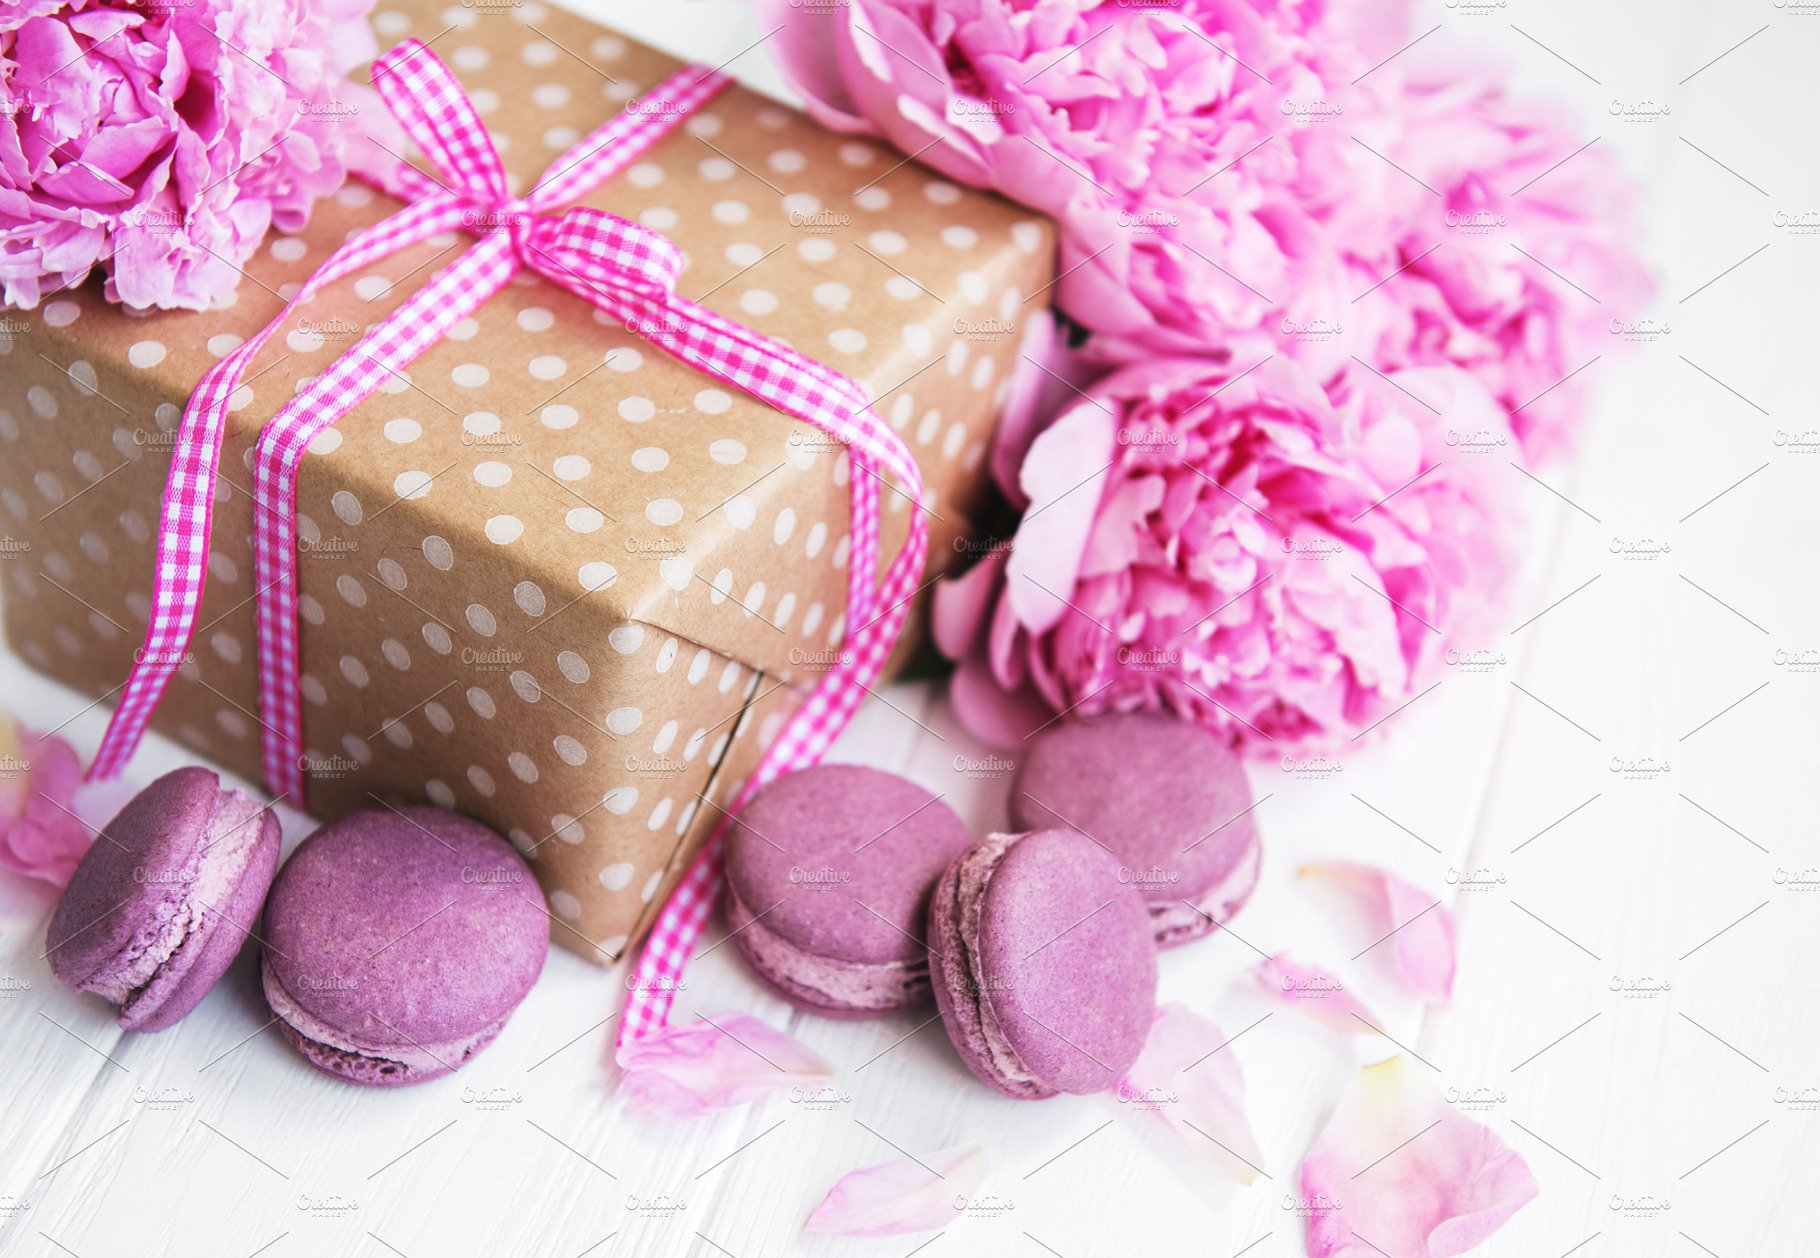 pink macaroons with peonies and gift ~ Food Images ~ Creative Market